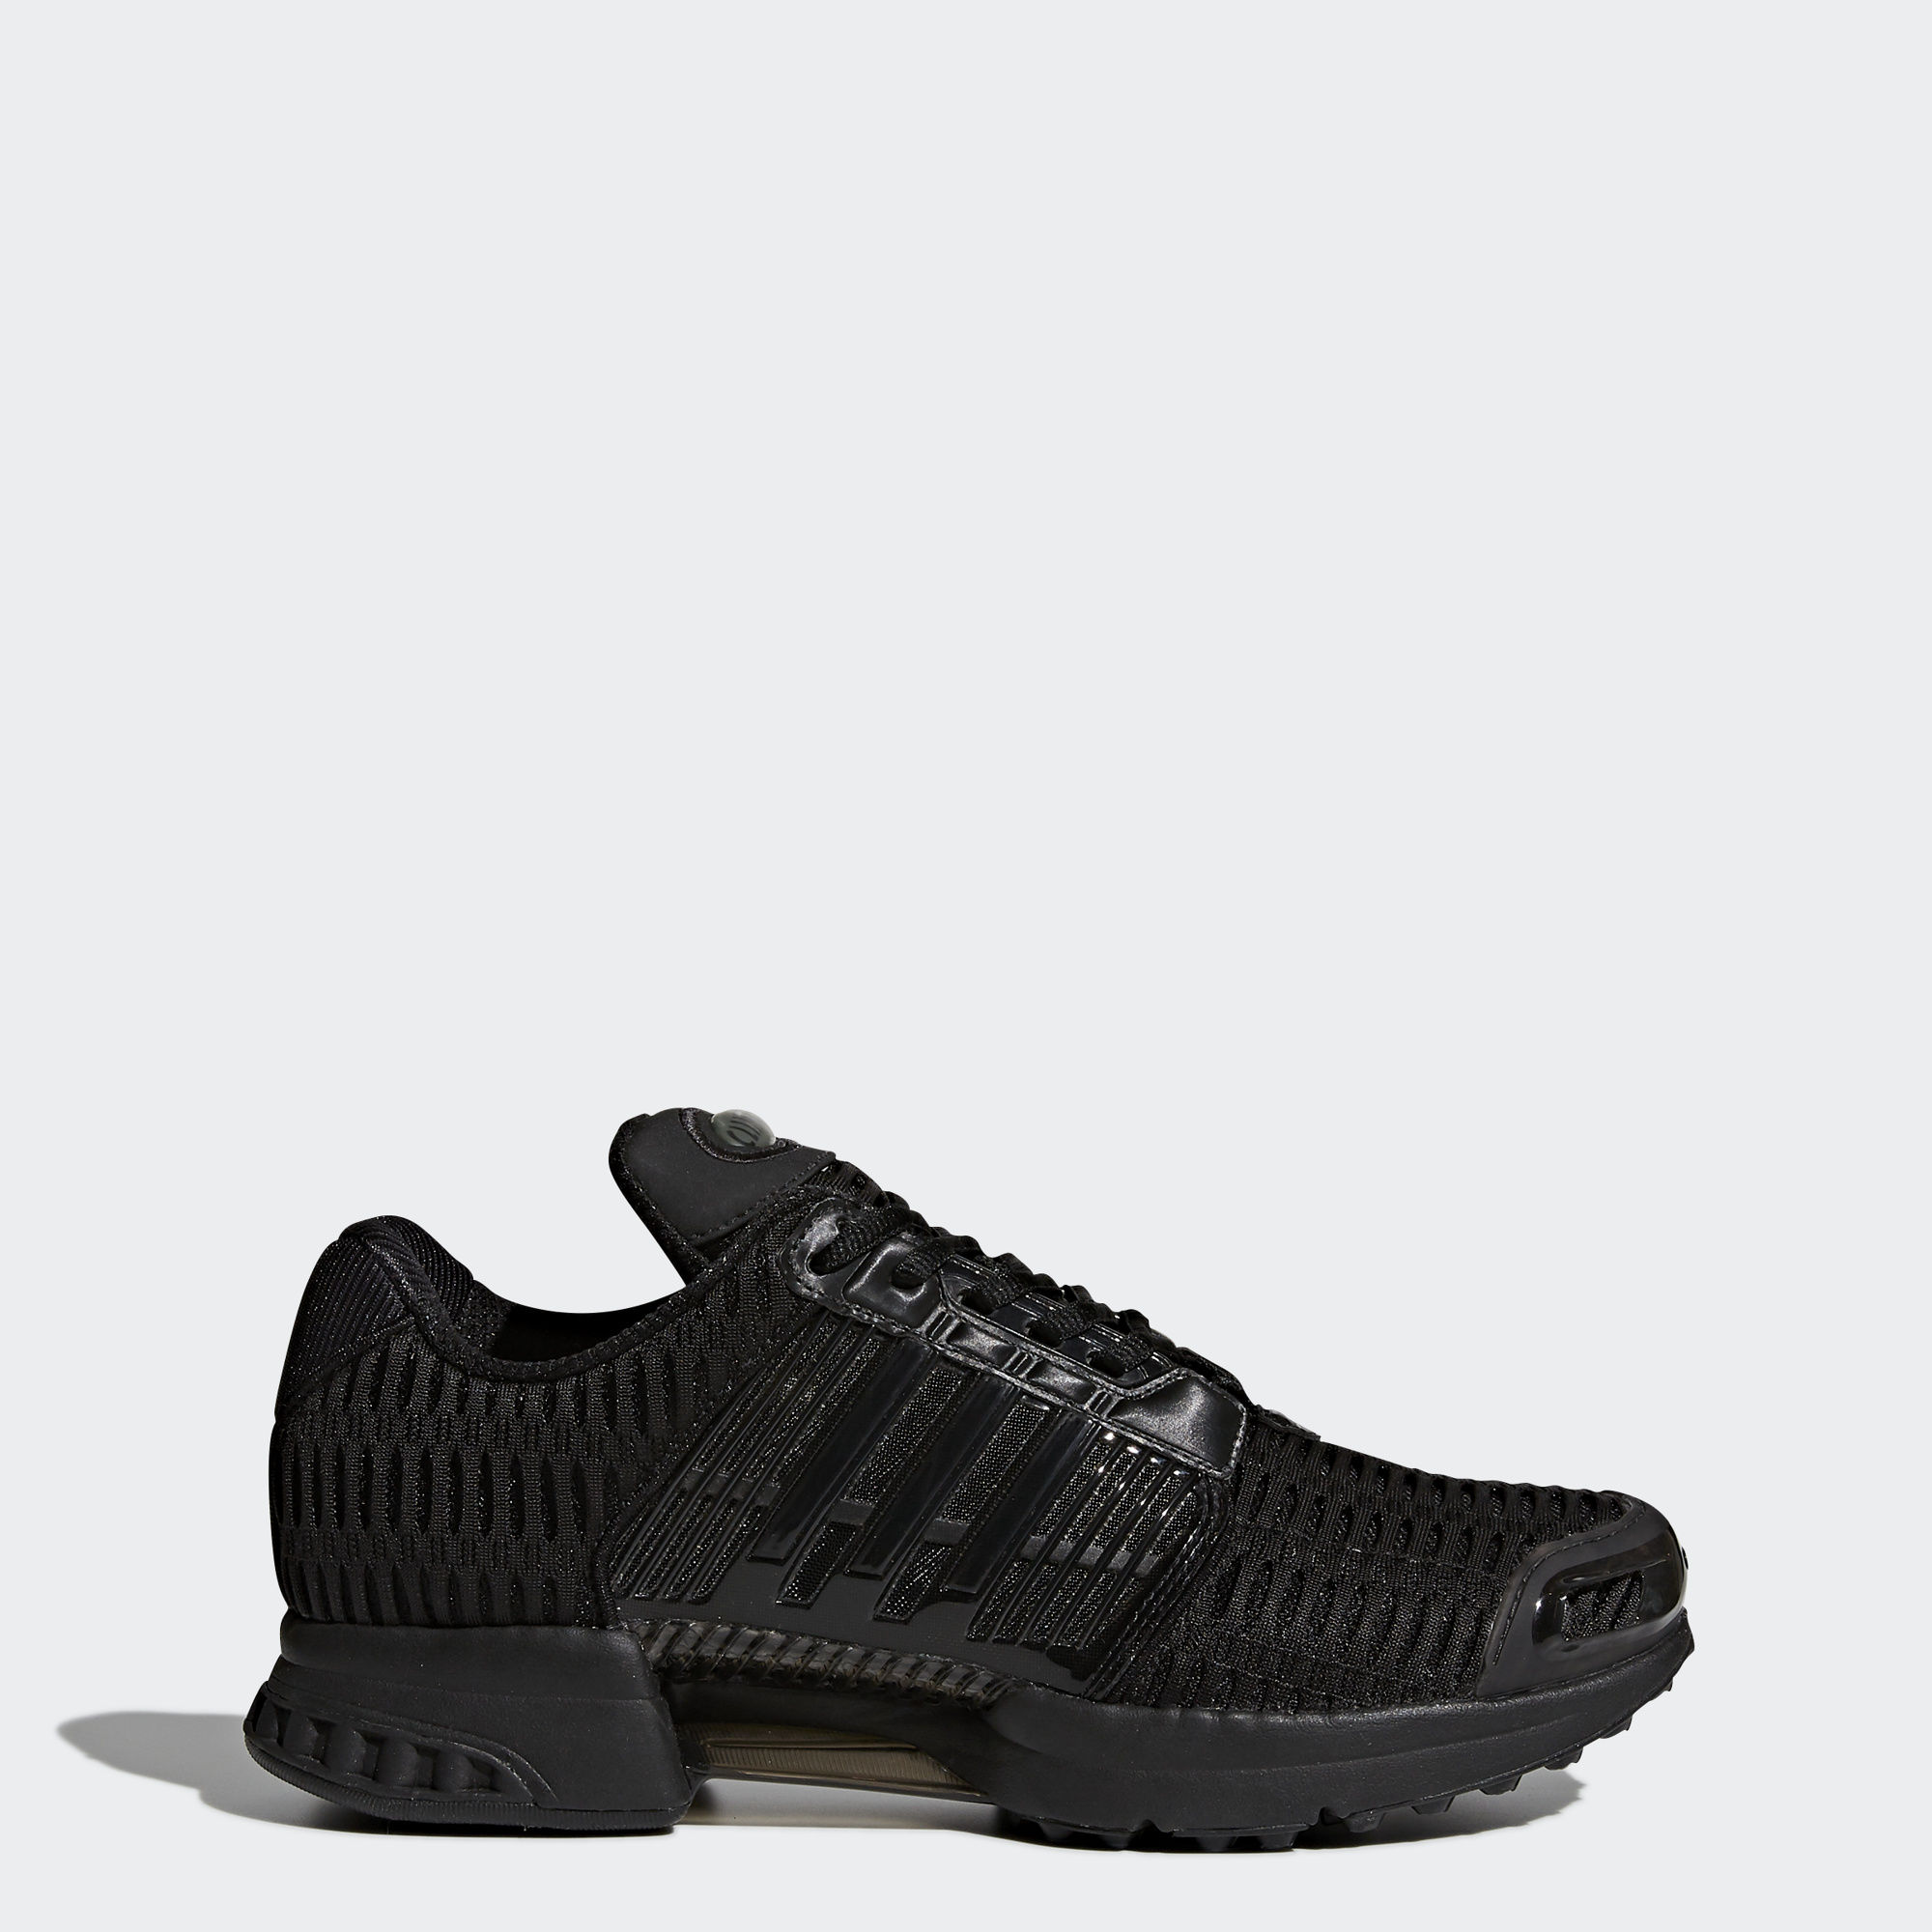 Adidas Climacool boutique, adidas - Chaussure Climacool 1 Core Black BA8582 ...